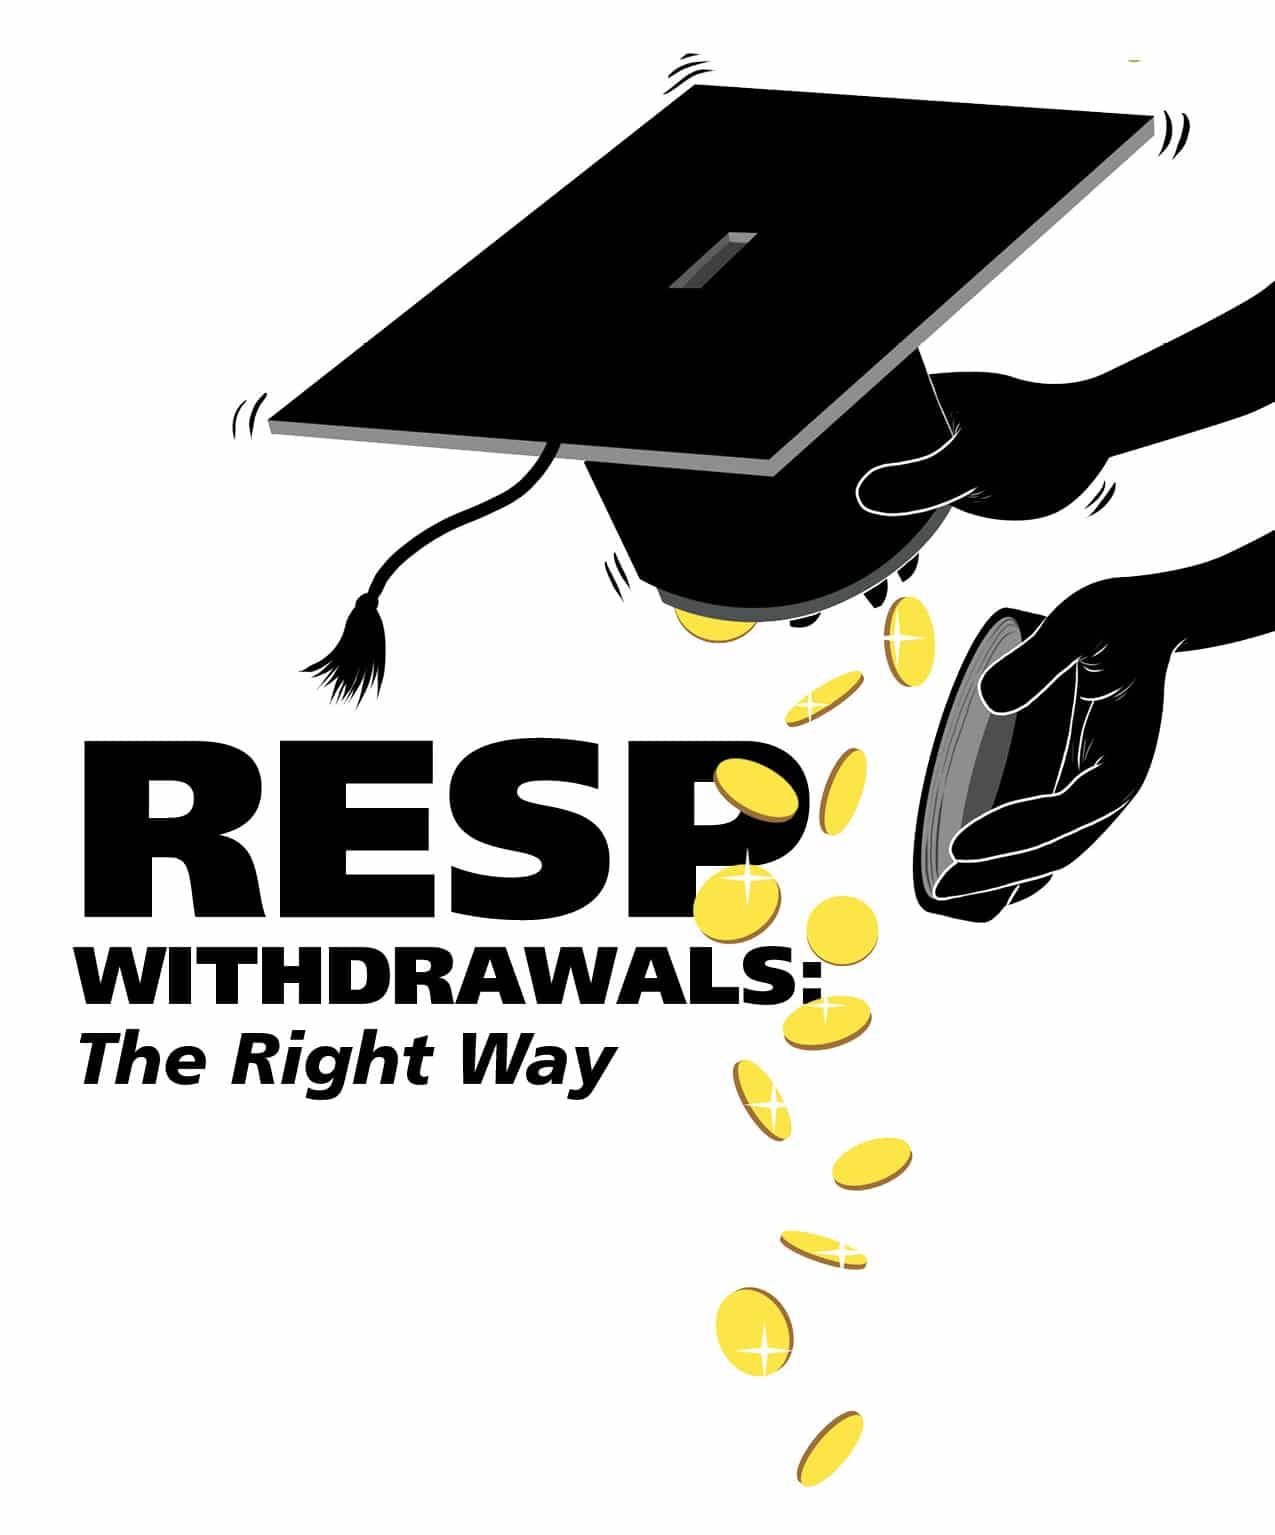 RESP Withdrawals: The right way